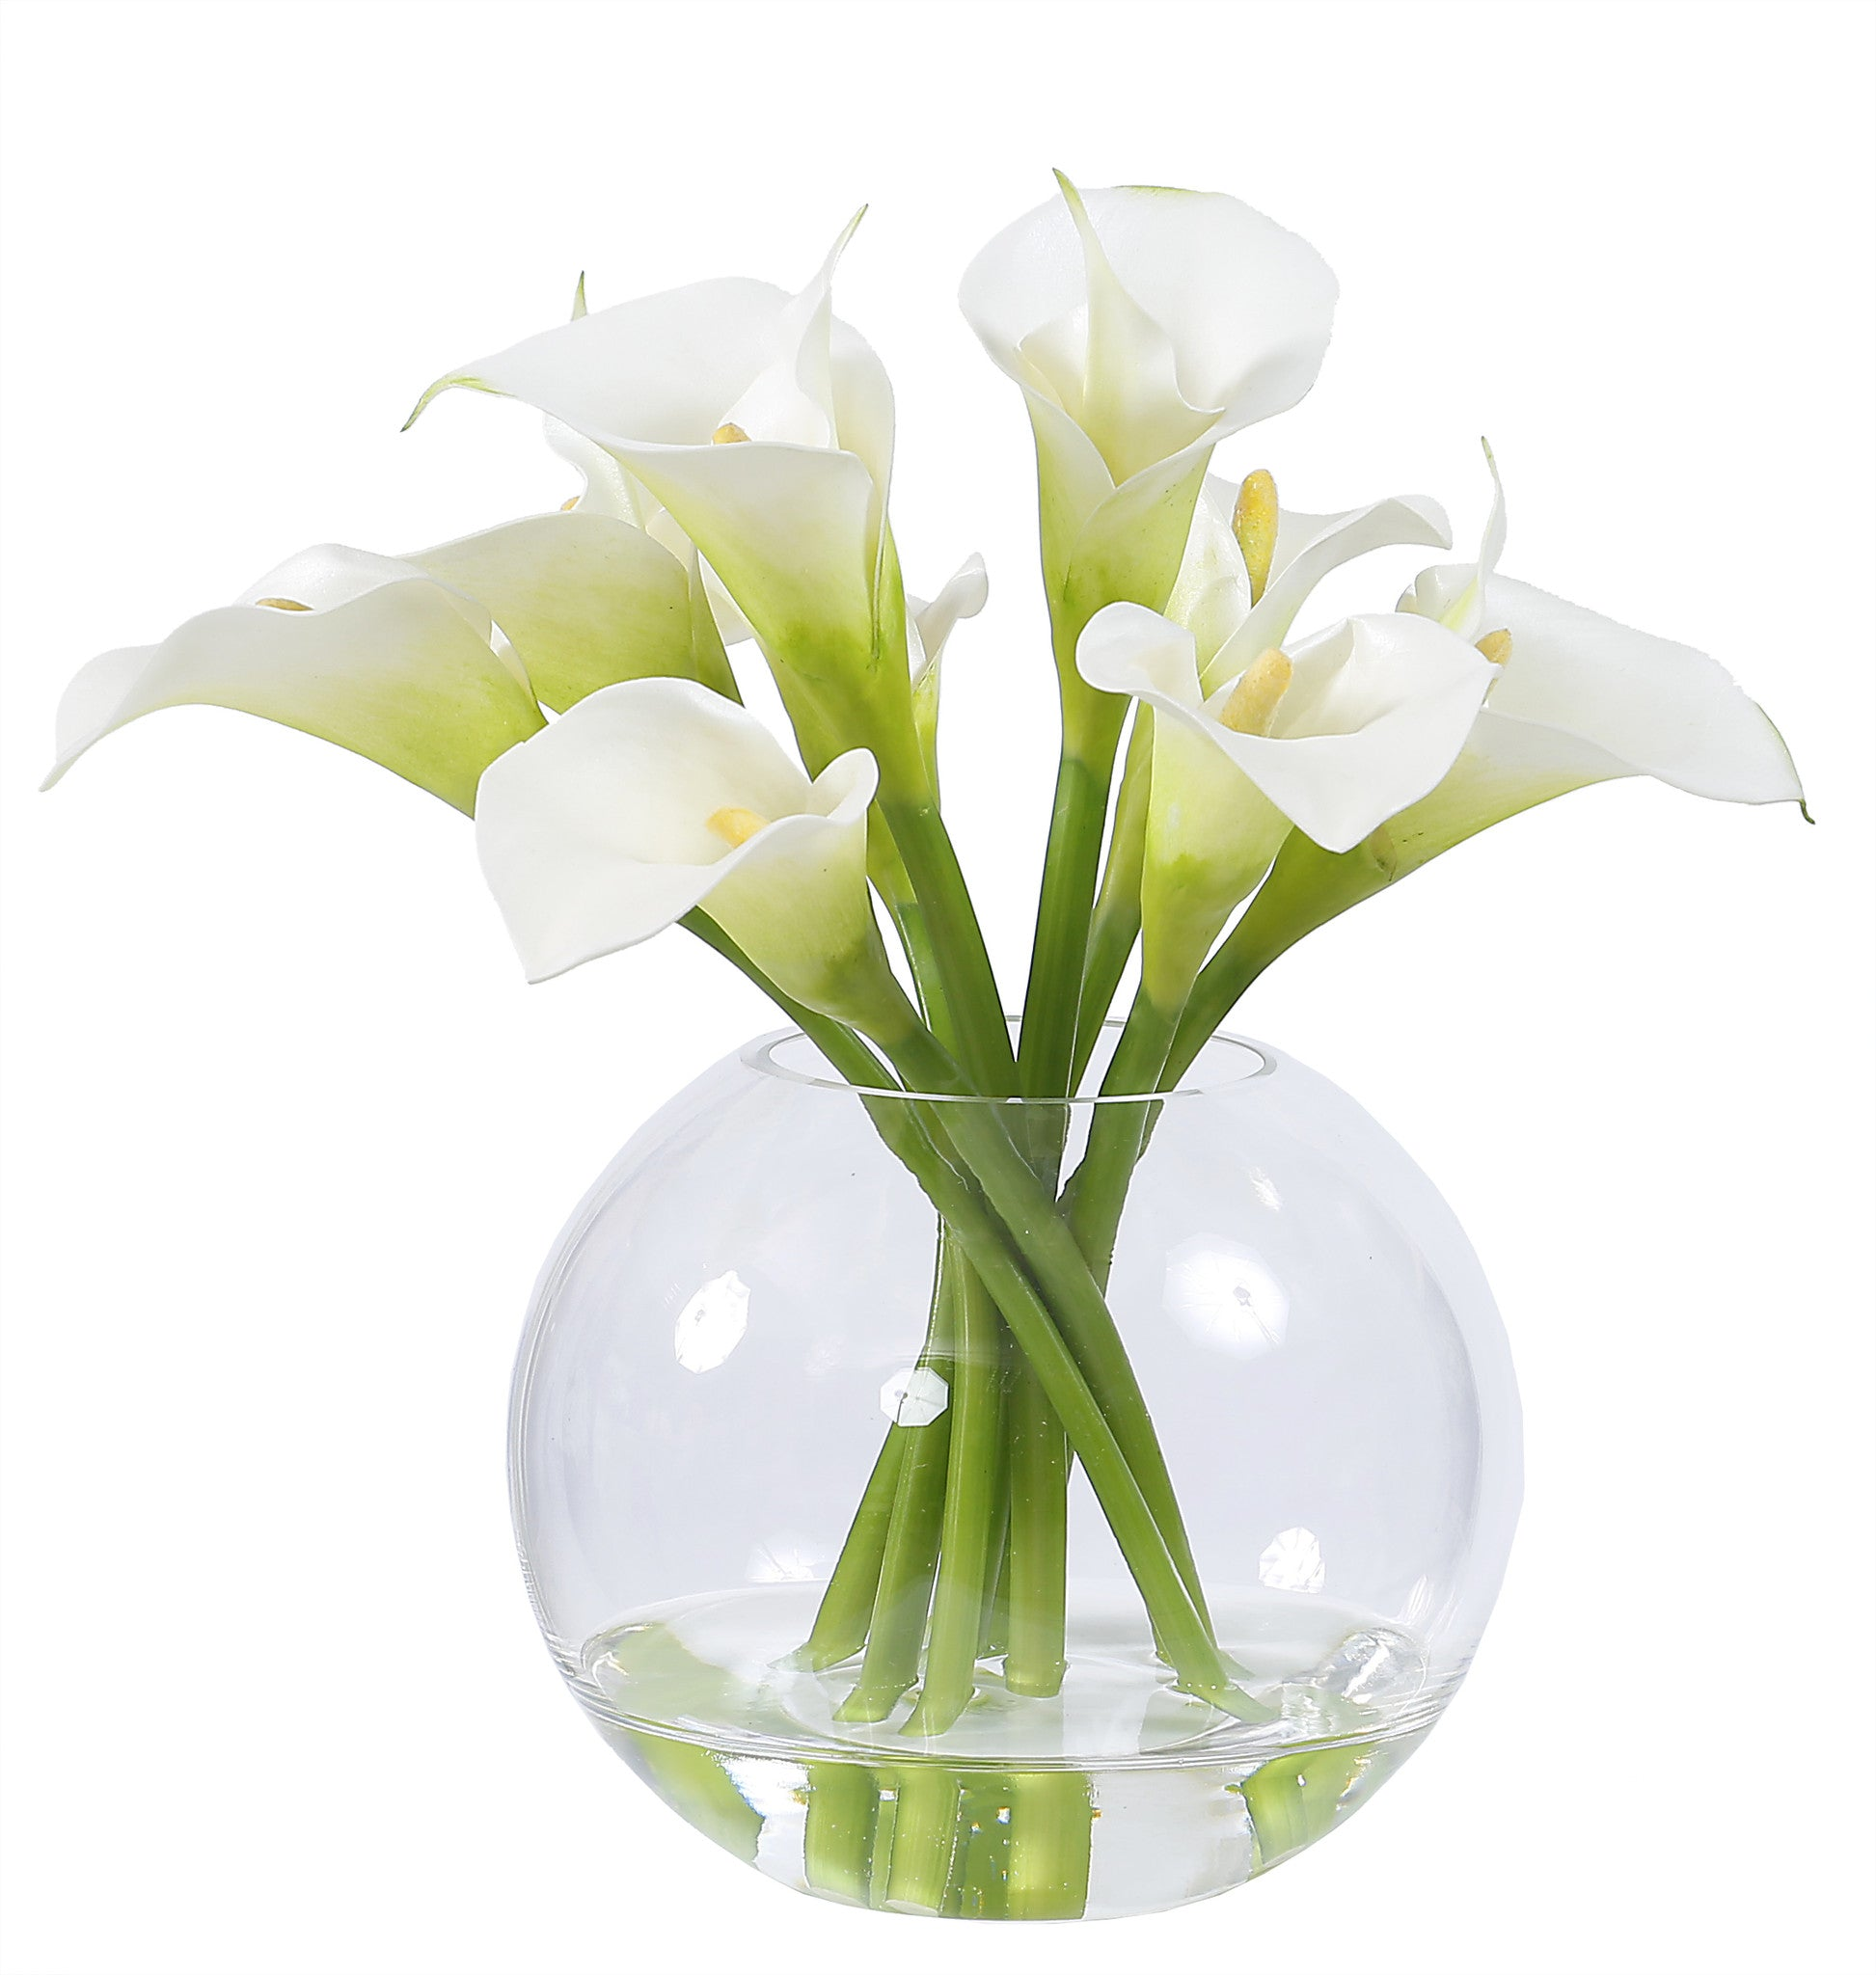 CALLA LILY IN GLASS 11'' (WHI003-WH) - Winward Home faux floral arrangements